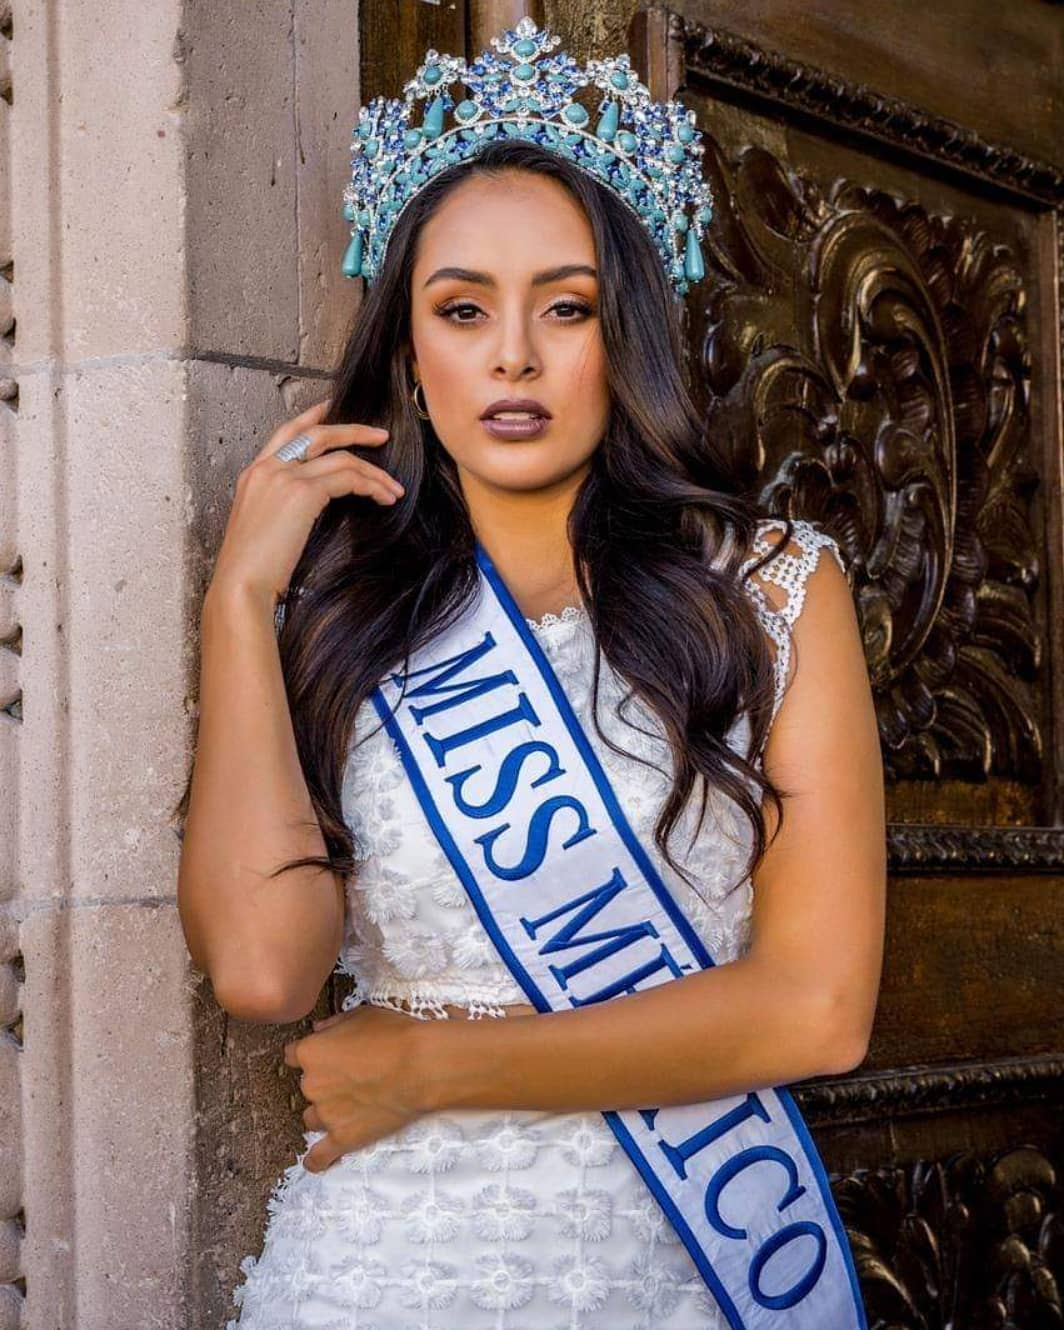 ashley alvidrez, top 12 de miss world 2019. - Página 2 71845010